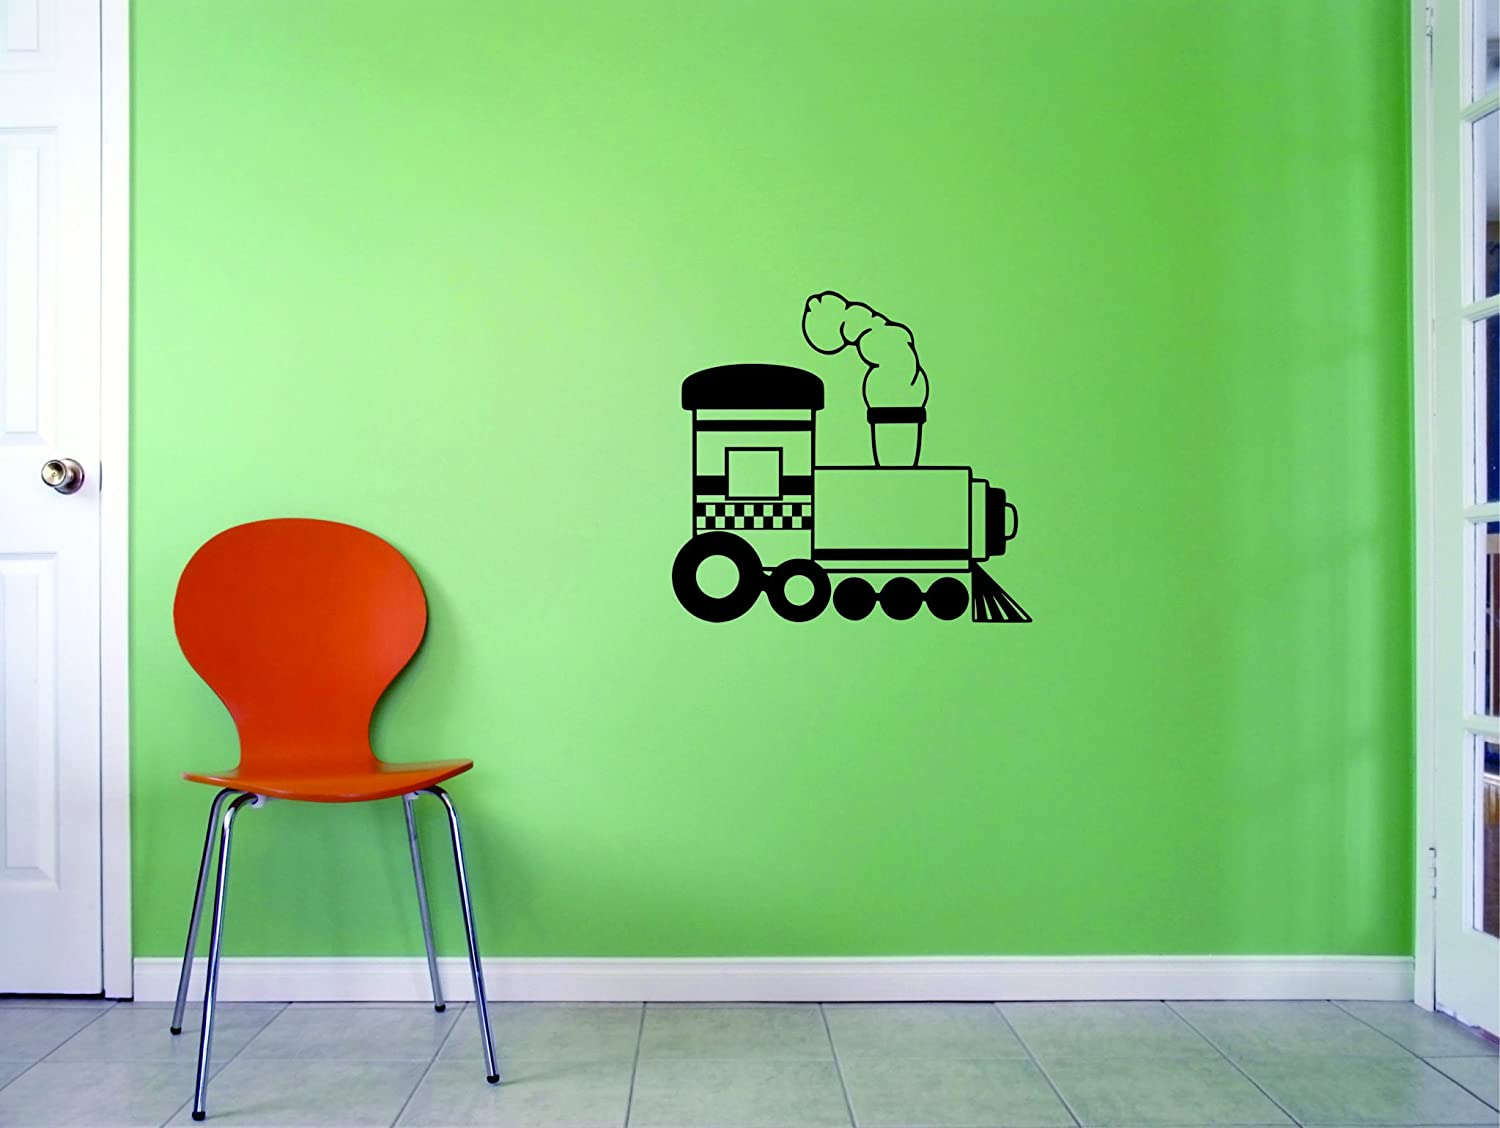 Black Design with Vinyl JER 2294 2 Hot New Decals Train Wall Art Size x 16 Inches Color 16 x 16,